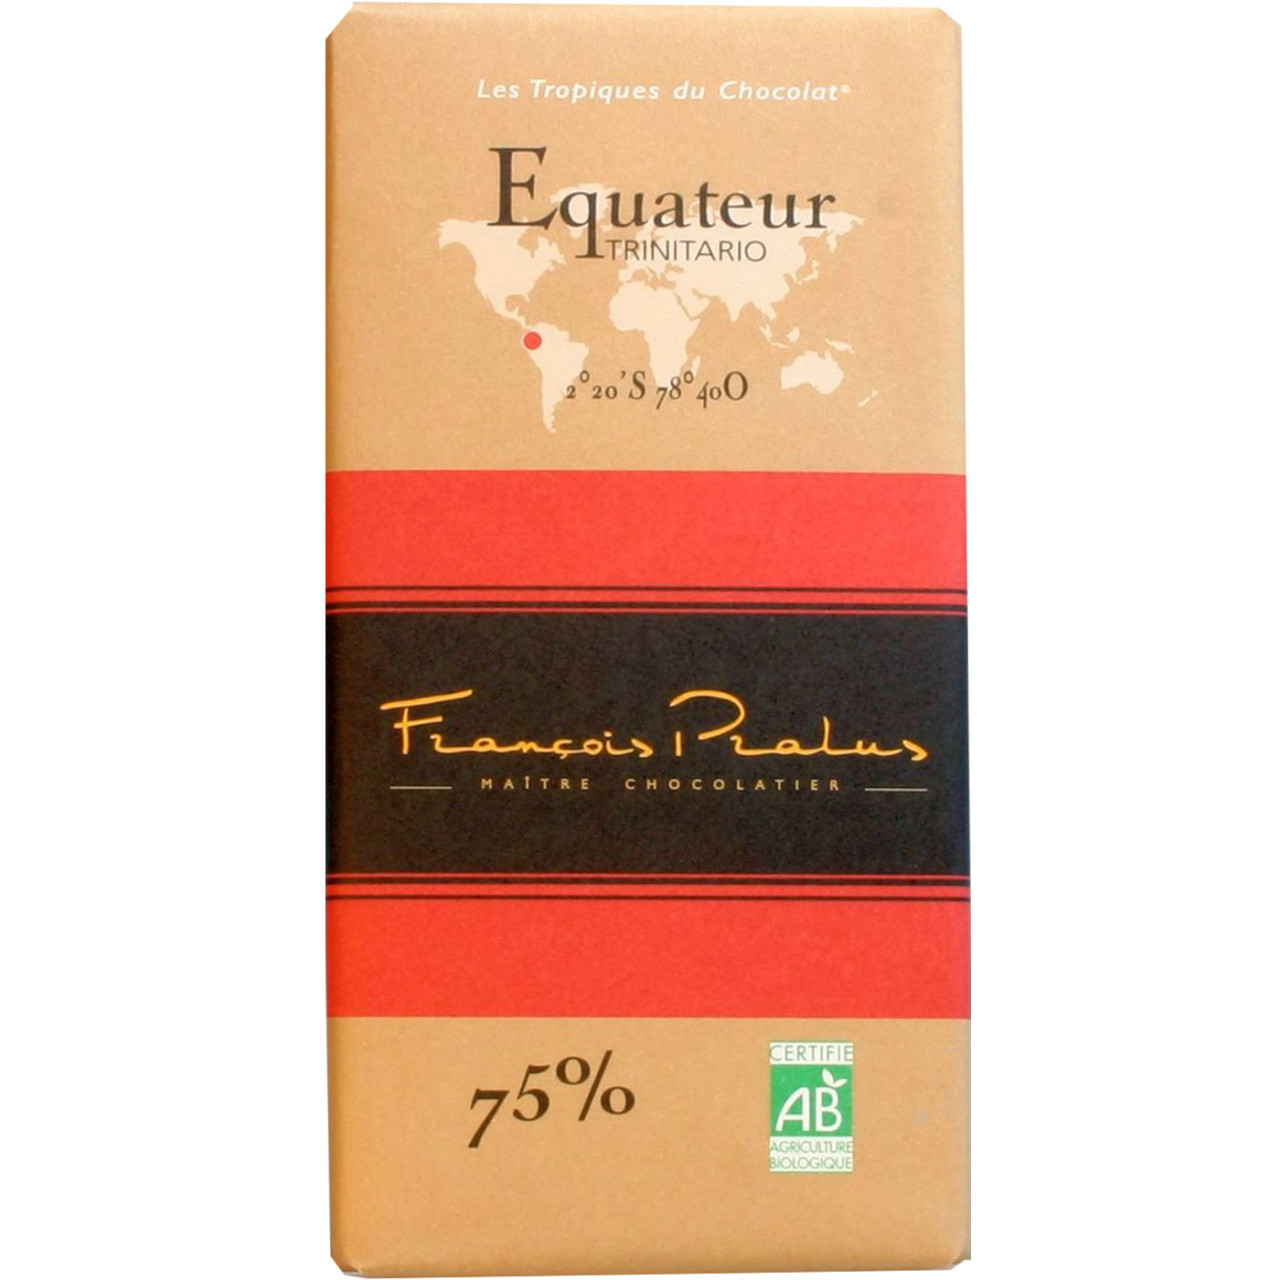 dunkle Schokolade 75%, Ecuador, Trinitario, dark chocolate, chocolat noir, , Bar of Chocolate , dark chocolate , Ecuador , Chocolate from South America , 75 % , Trinitario cocoa bean, Trinitario cacao bean , Bean-To-Bar Chocolate, Single Origin Chocolate , France, french chocolate , off-white , sleeve, Sticker , Father's Day, Guest present, Mother's day, Thankyou ! , Gifts for companies, corporate gifts, Gifts for customers, customer gifts, Gifts for employees, Gifts for staff, Gifts for office & colleagues , Citrus fruit, Fig , chocolatey, dark creamy, harmonic, strong , - Chocolats-De-Luxe